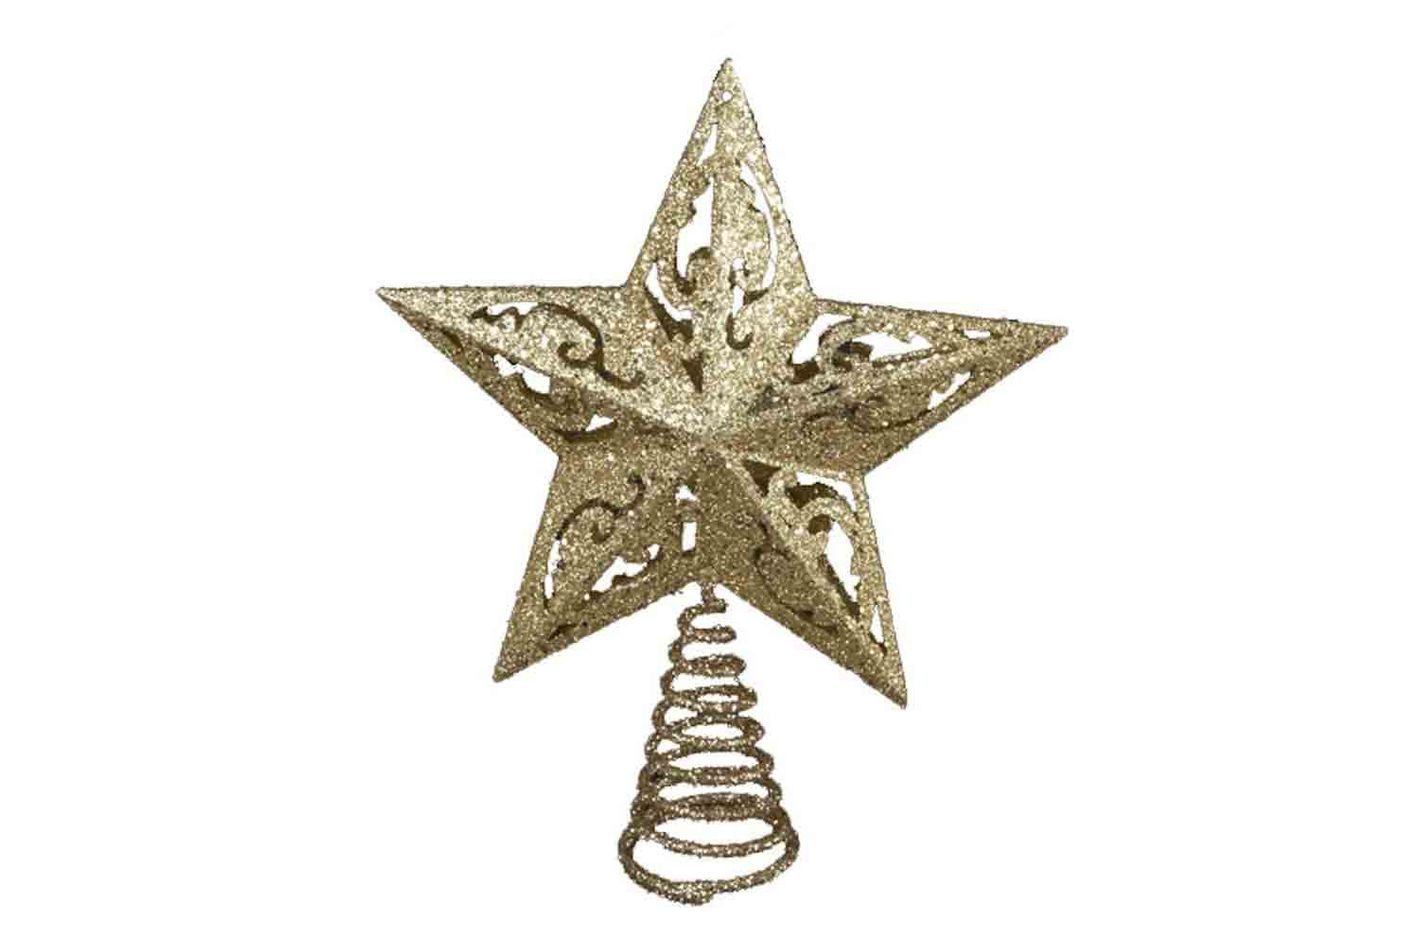 17361a9d8ce7 Best traditional star Christmas tree topper. Kurt Adler 8-Inch Gold  Glittered 5 Point Star Treetop